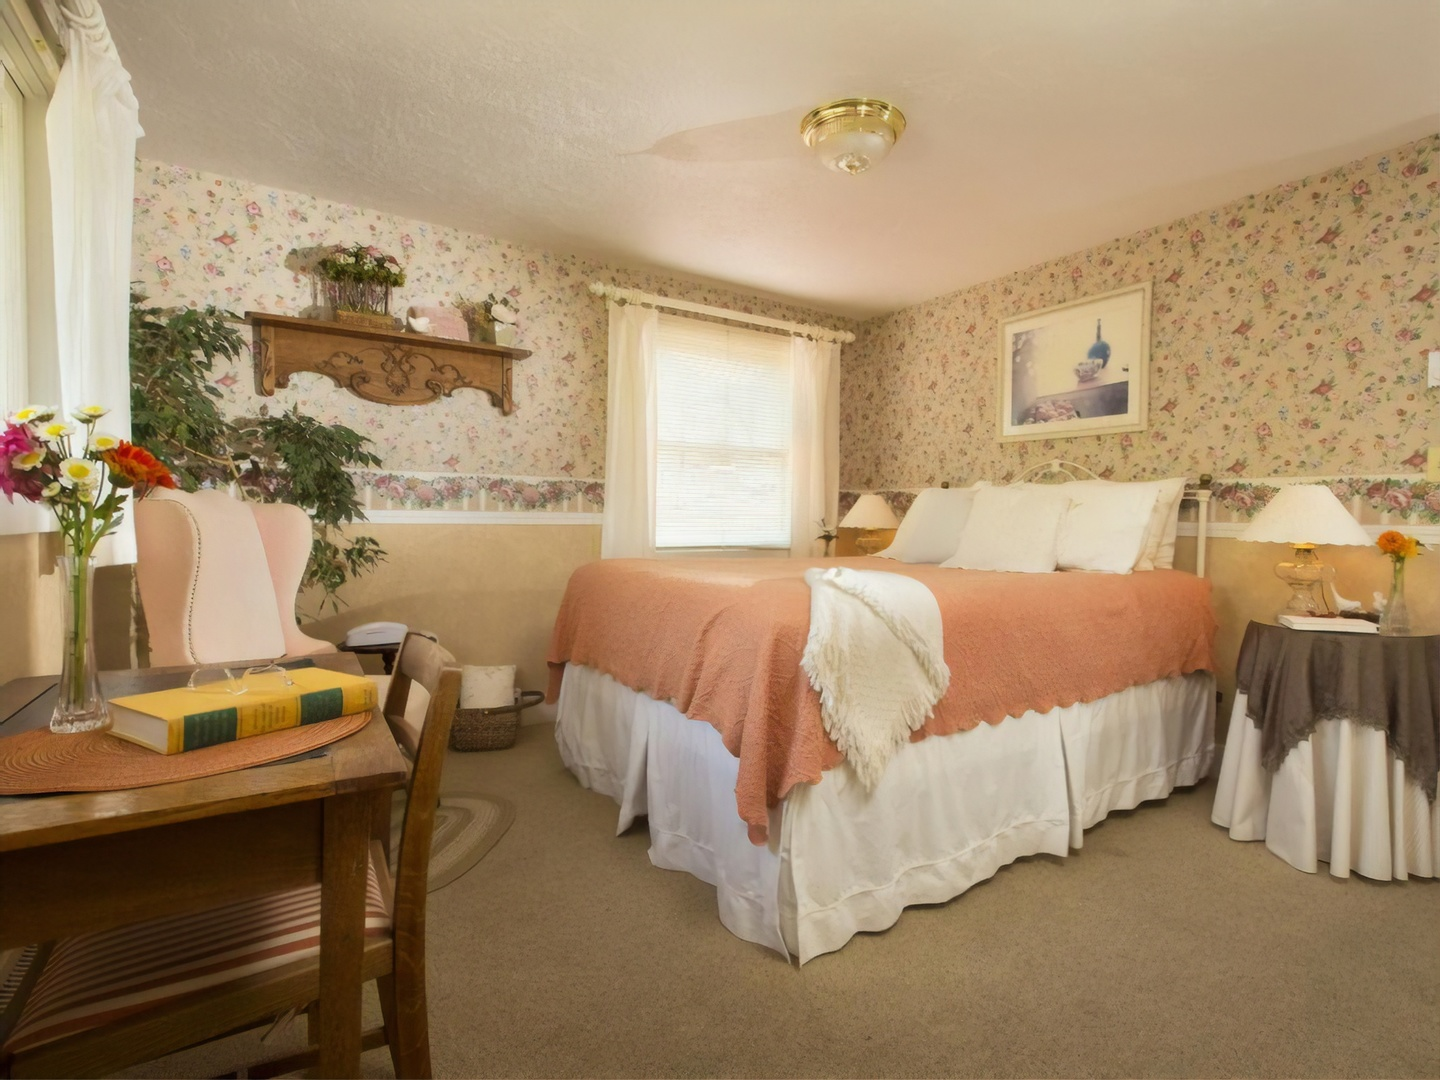 A bedroom with a bed and desk in a room at Country Willows Inn & Estate.